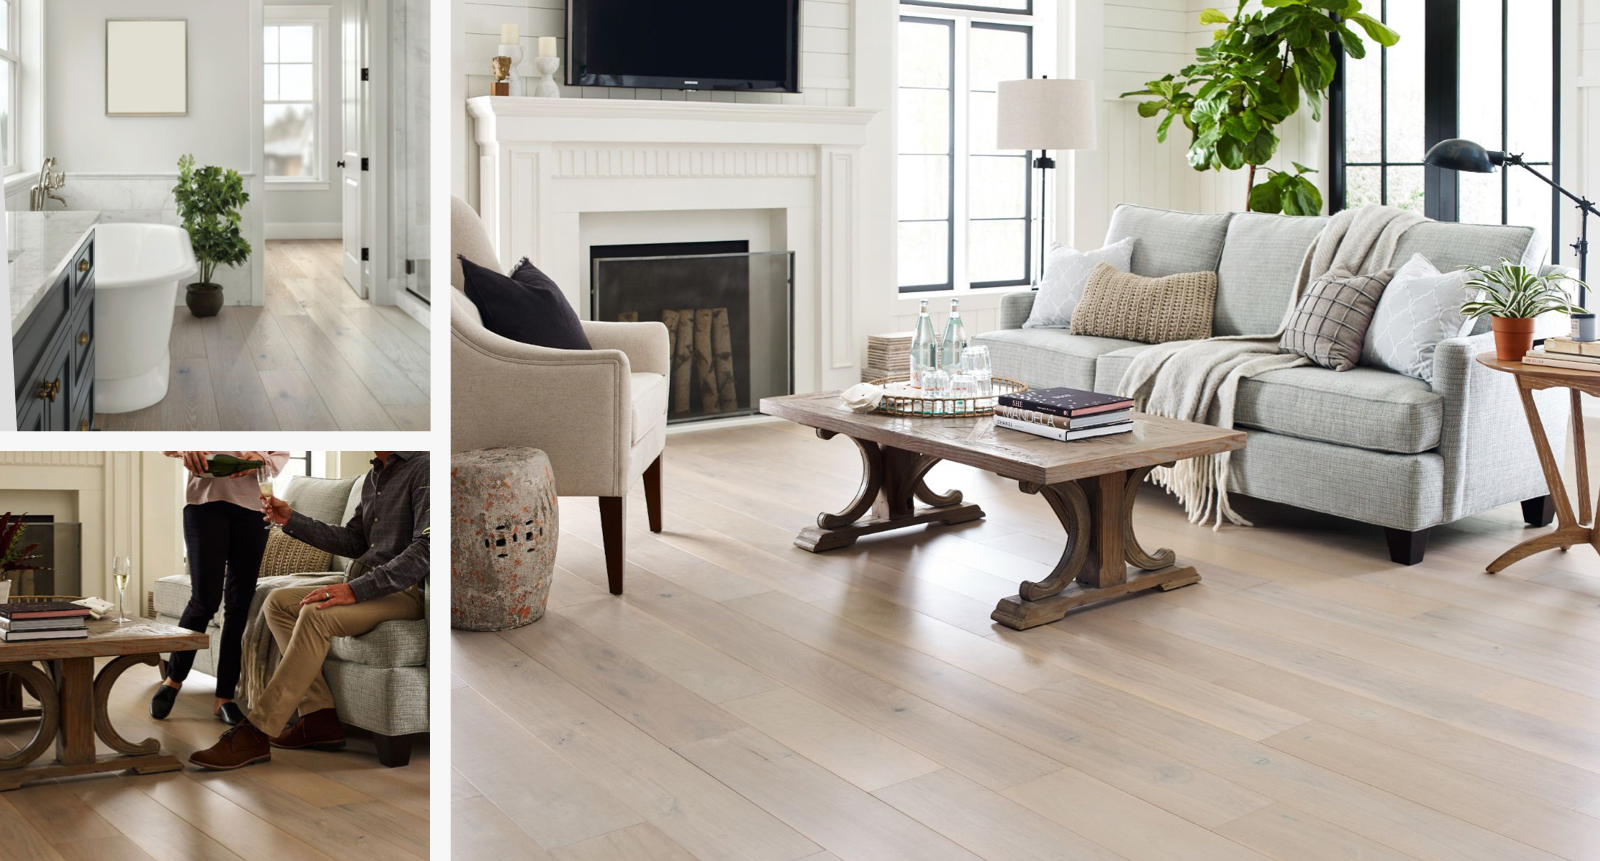 Floorte waterproof hardwood flooring for your home | Village Custom Interiors